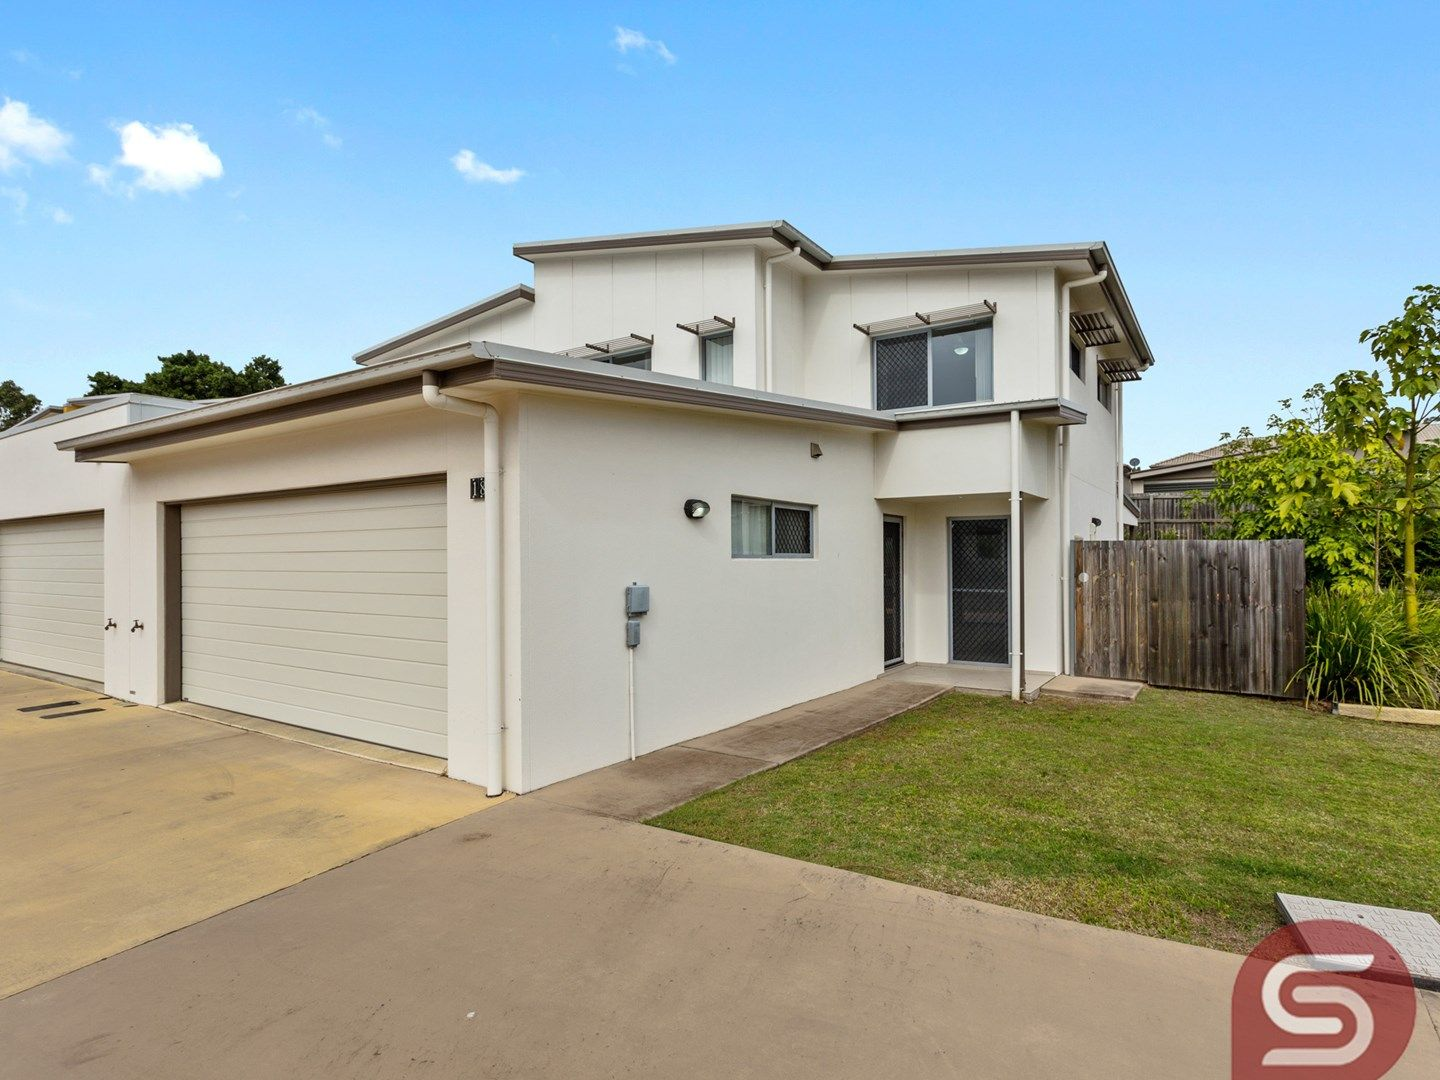 18/51 Lacey Rd, Carseldine QLD 4034, Image 0